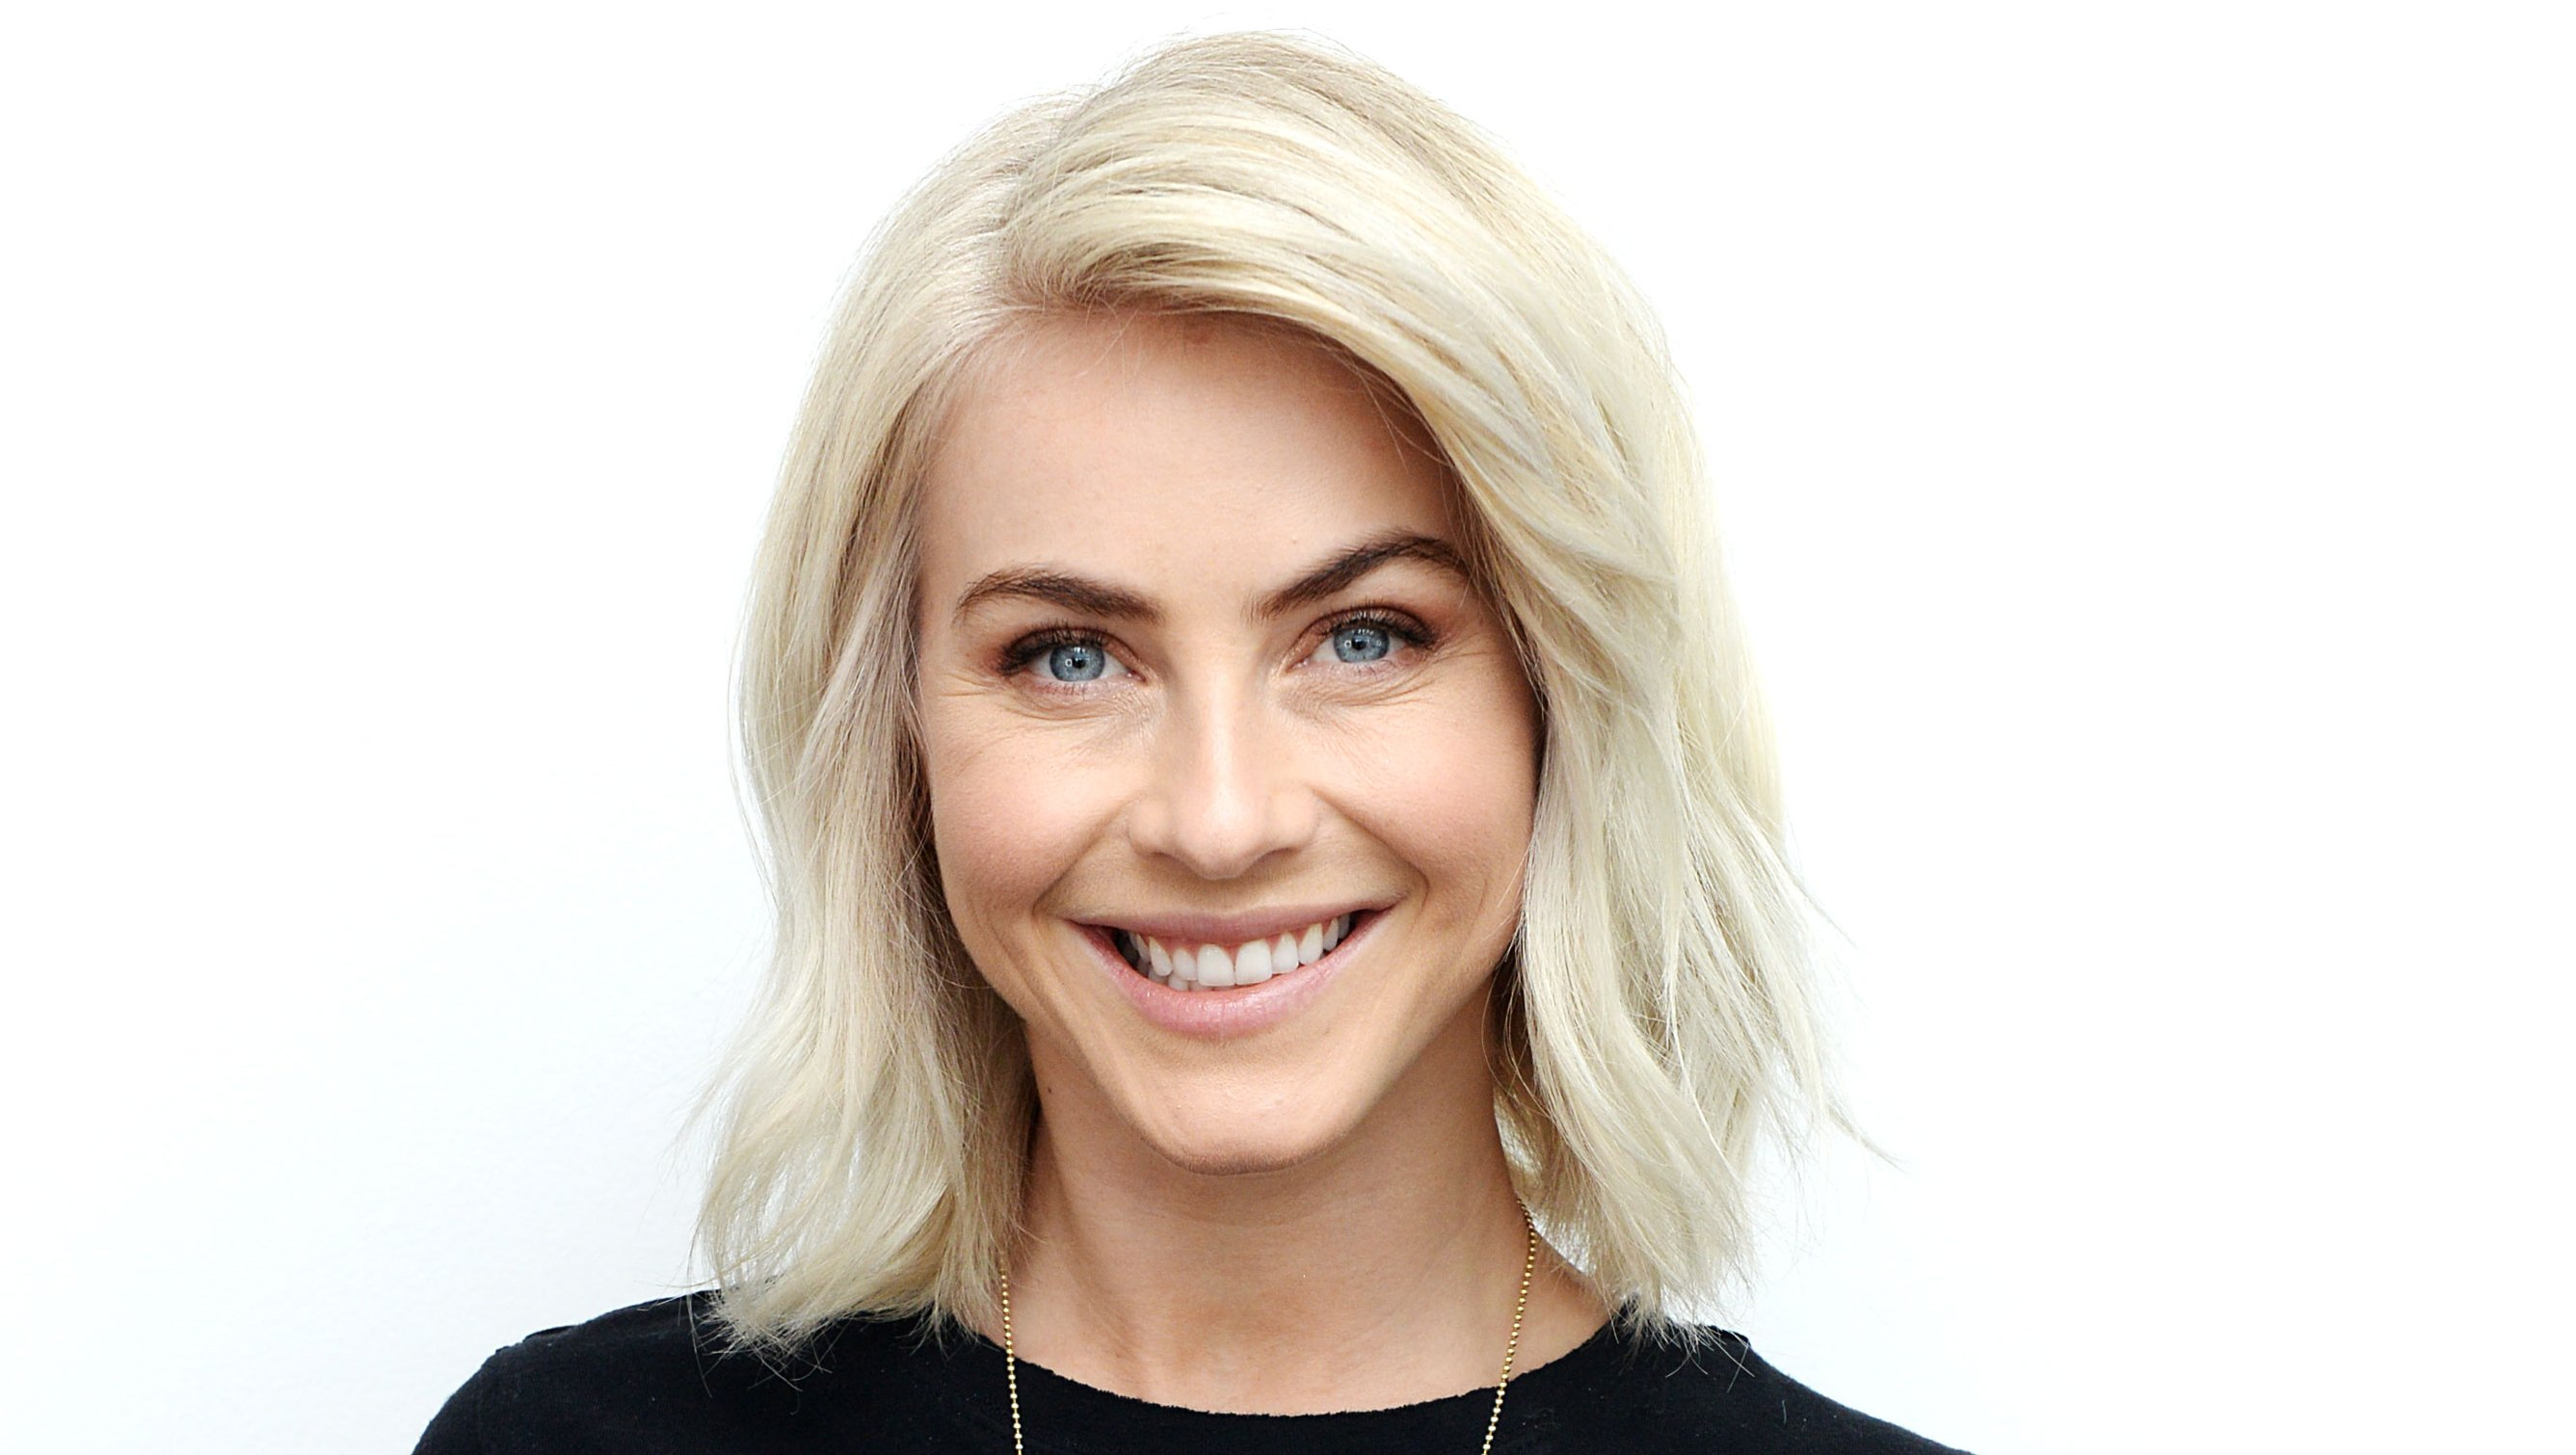 Julianne Hough Almost Shaved Head